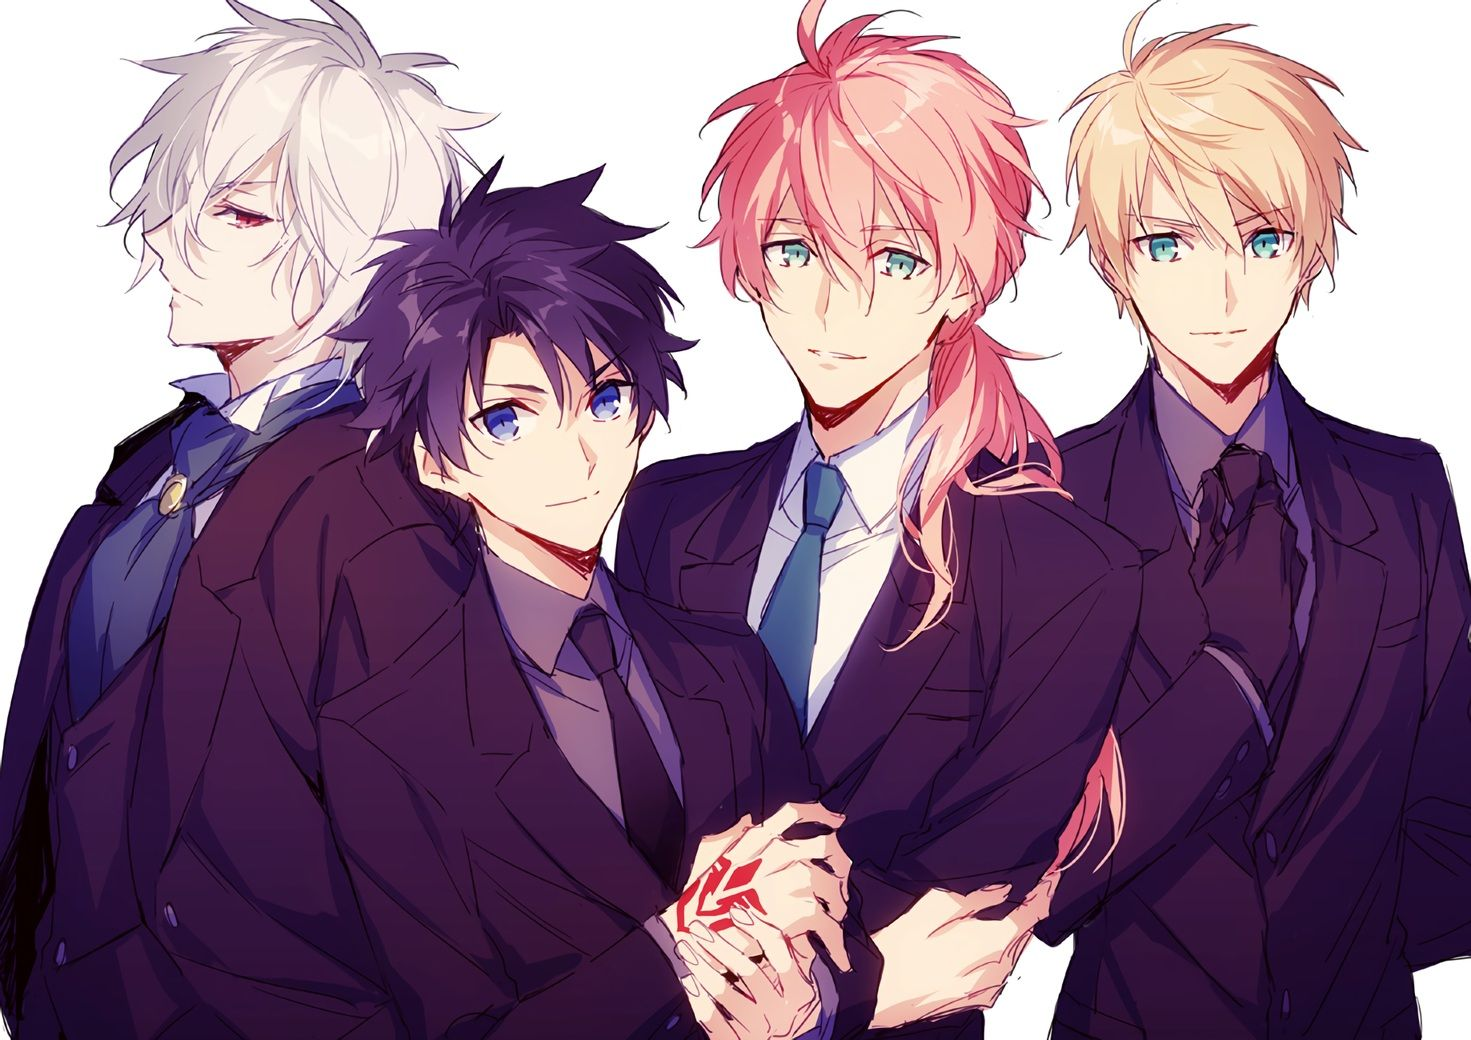 All Male Aqua Eyes Black Hair Blonde Hair Blue Eyes Edmond Dantes Fate Grand Order Fate Series Fujimaru Ritsuka Male Gloves Gray Anime Boy Fate Anime Guys